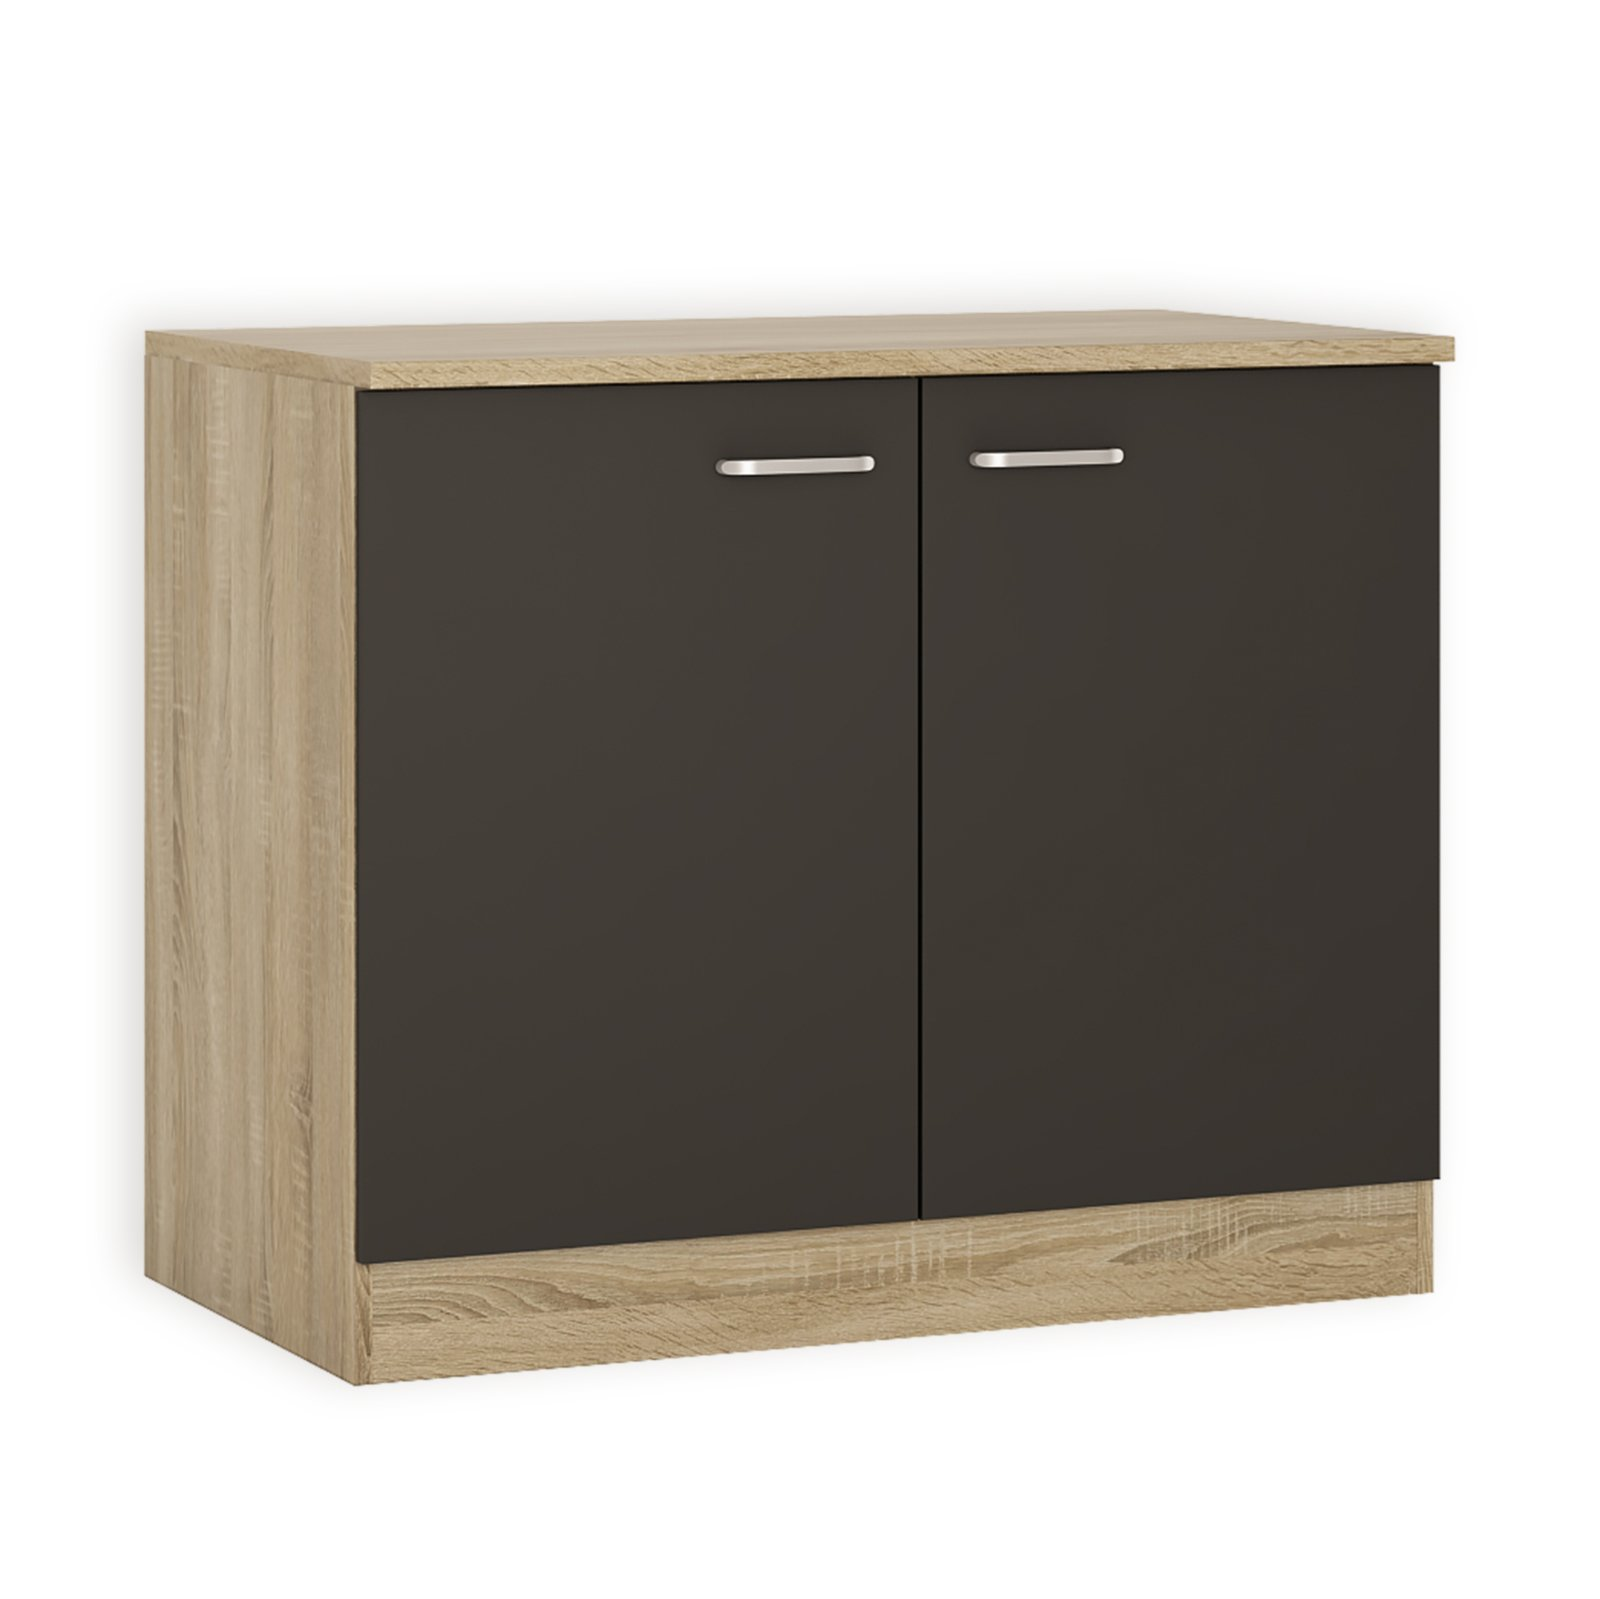 sp lenunterschrank fox anthrazit sonoma eiche 100 cm. Black Bedroom Furniture Sets. Home Design Ideas